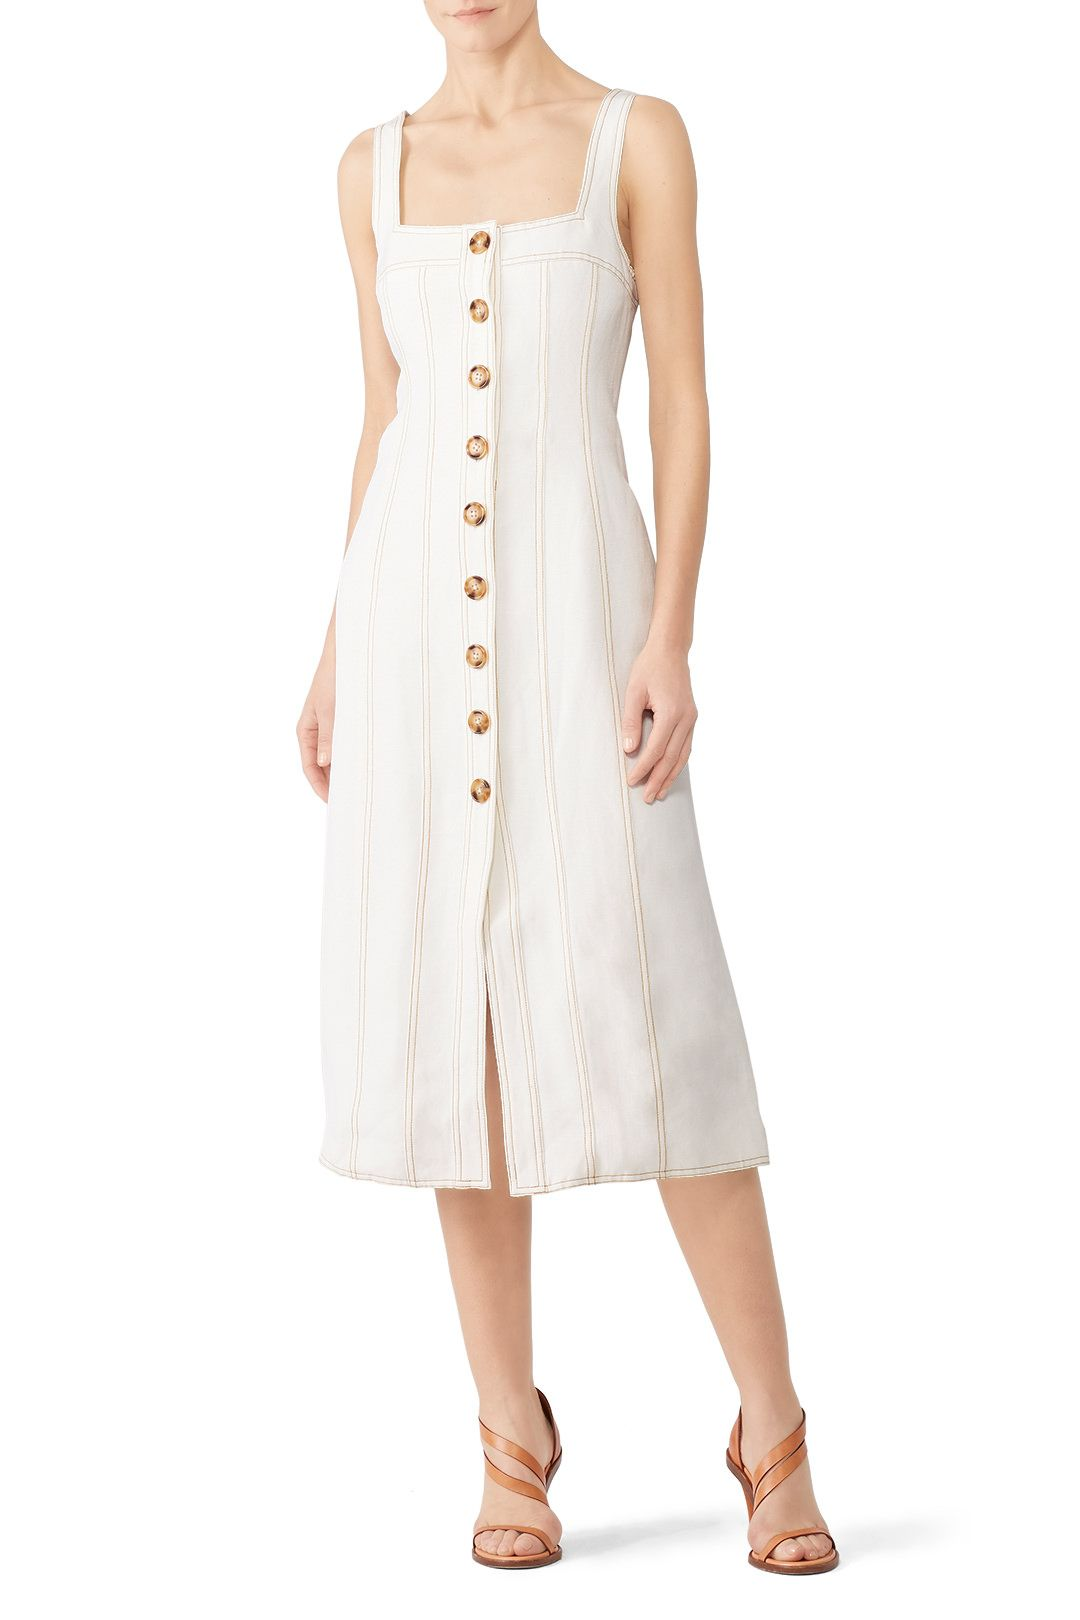 Rent Devoted Midi Dress By C Meo Collective For 35 Only At Rent The Runway Dresses Daytime Dresses Casual Dresses